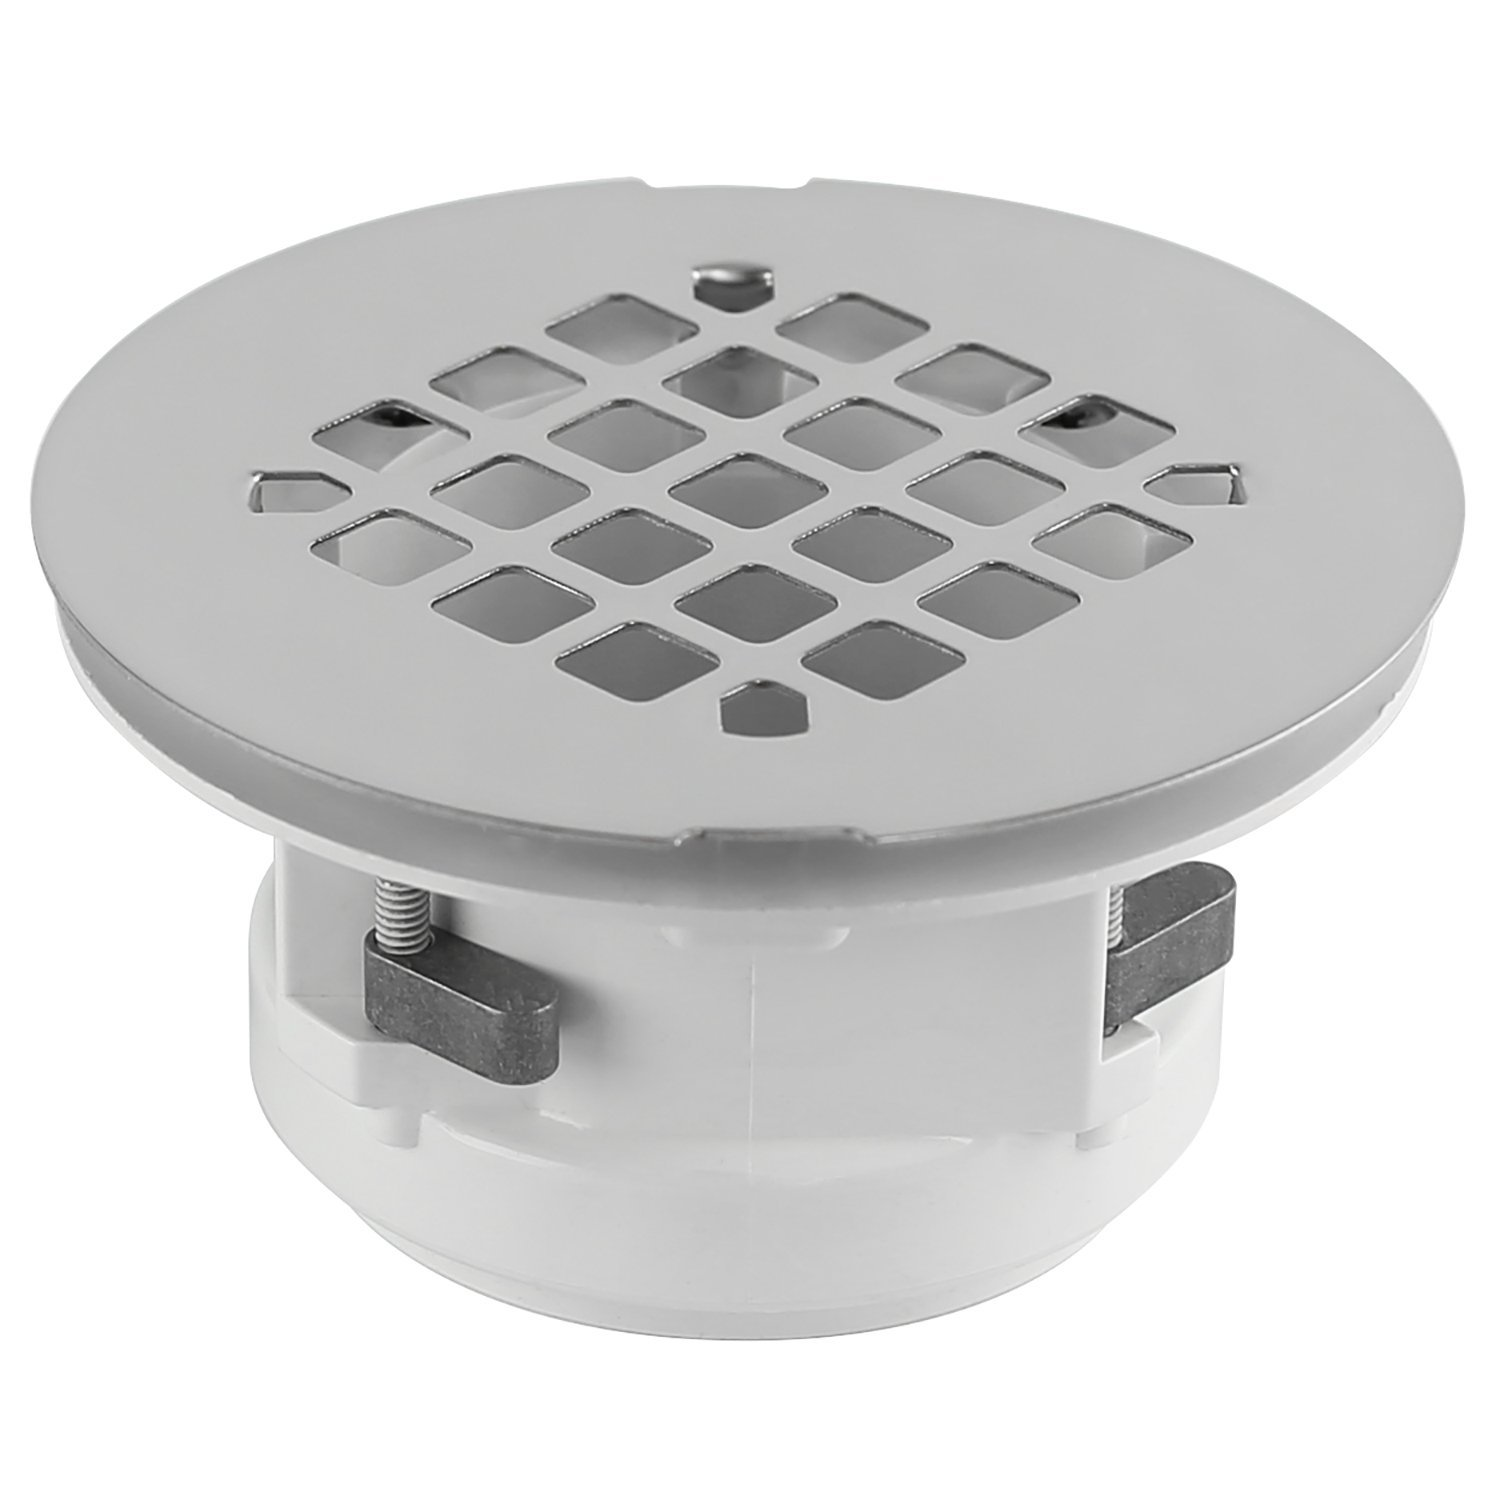 Best Rated In Bathroom Sink Bathtub Drain Strainers Helpful Plumbing Kit Addition Kitchen Diagrams Wingtite Shower Replacement Installs Entirely From The Top Chrome